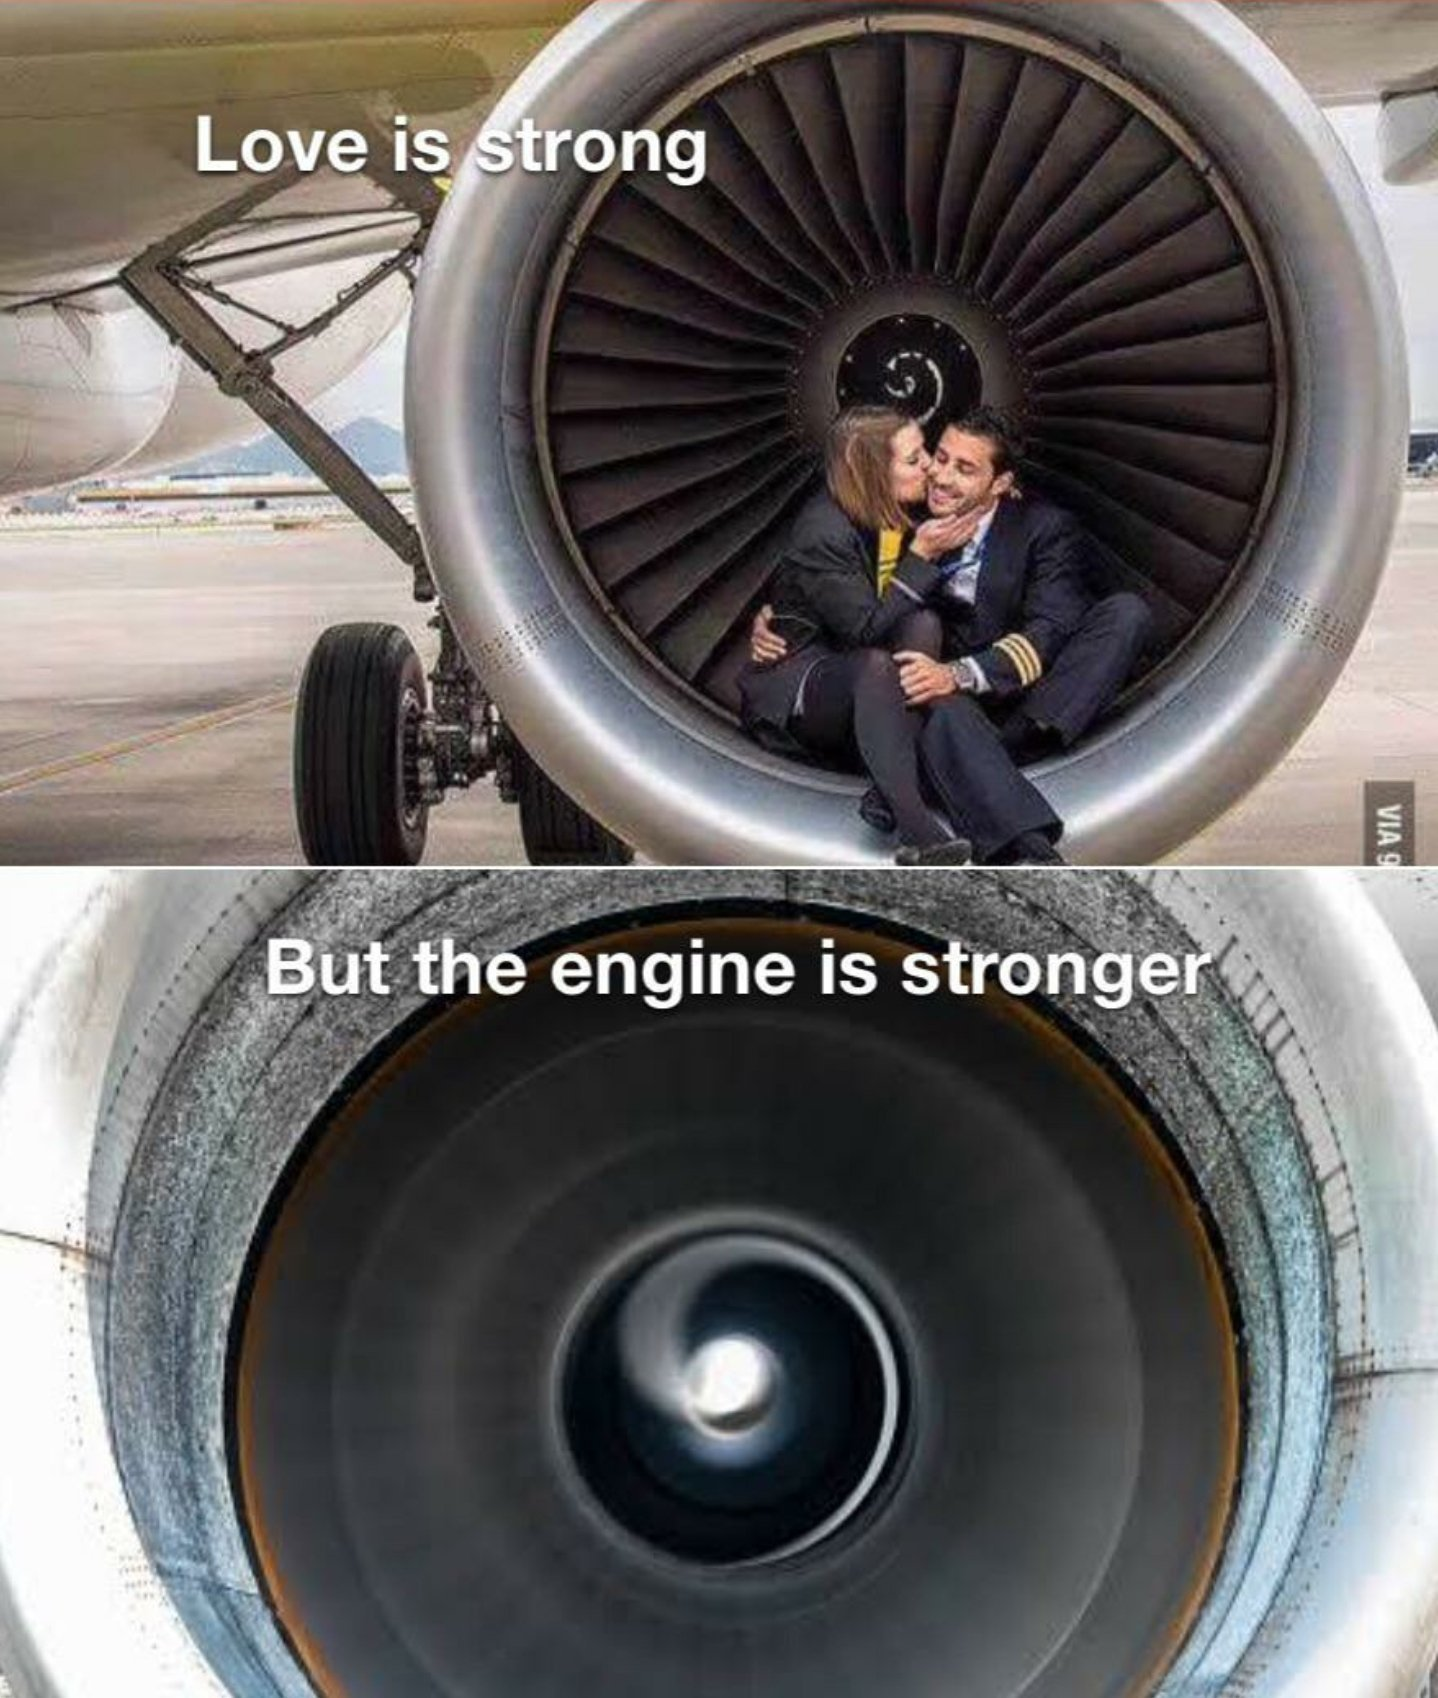 Love is strong - meme